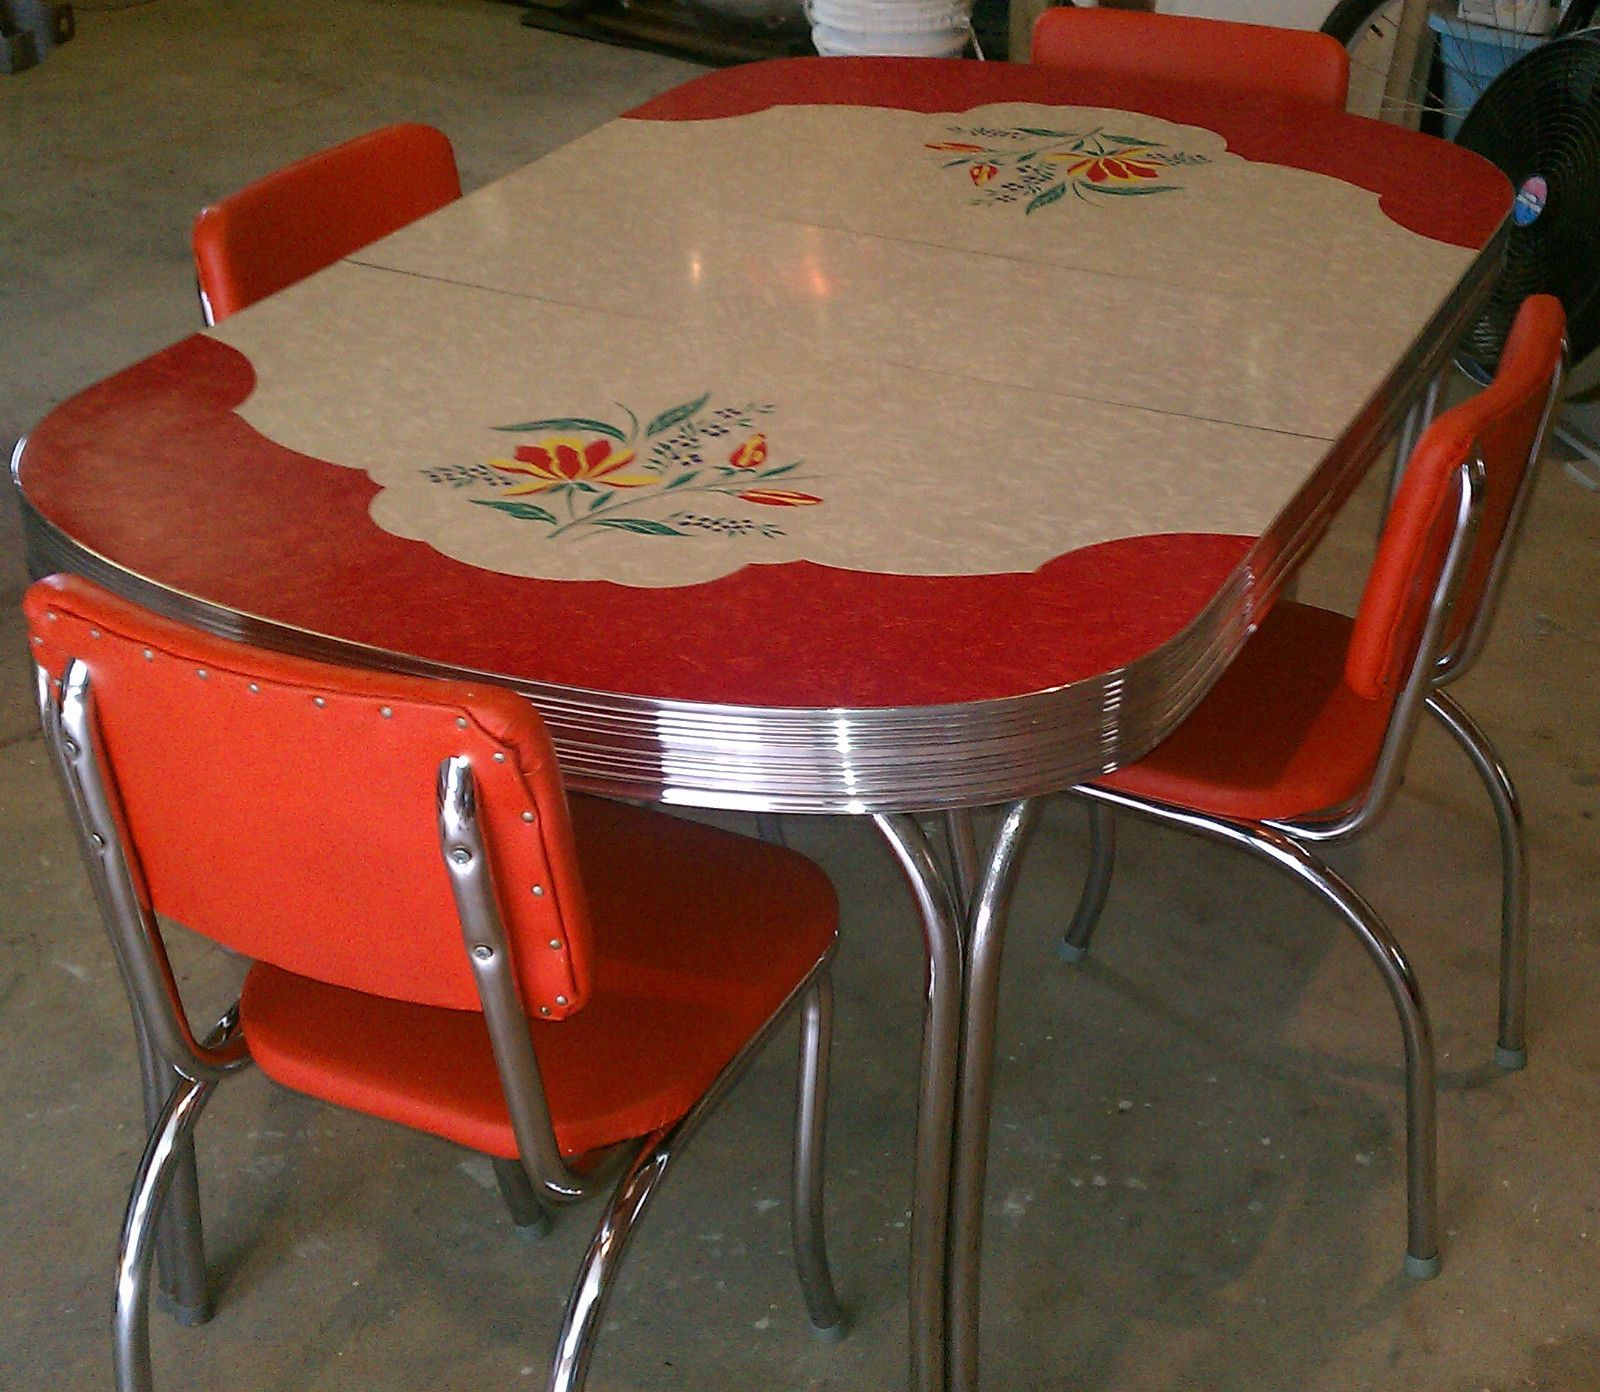 Vintage kitchen formica table 4 chairs chrome orange red for Kitchen table and chairs set for sale